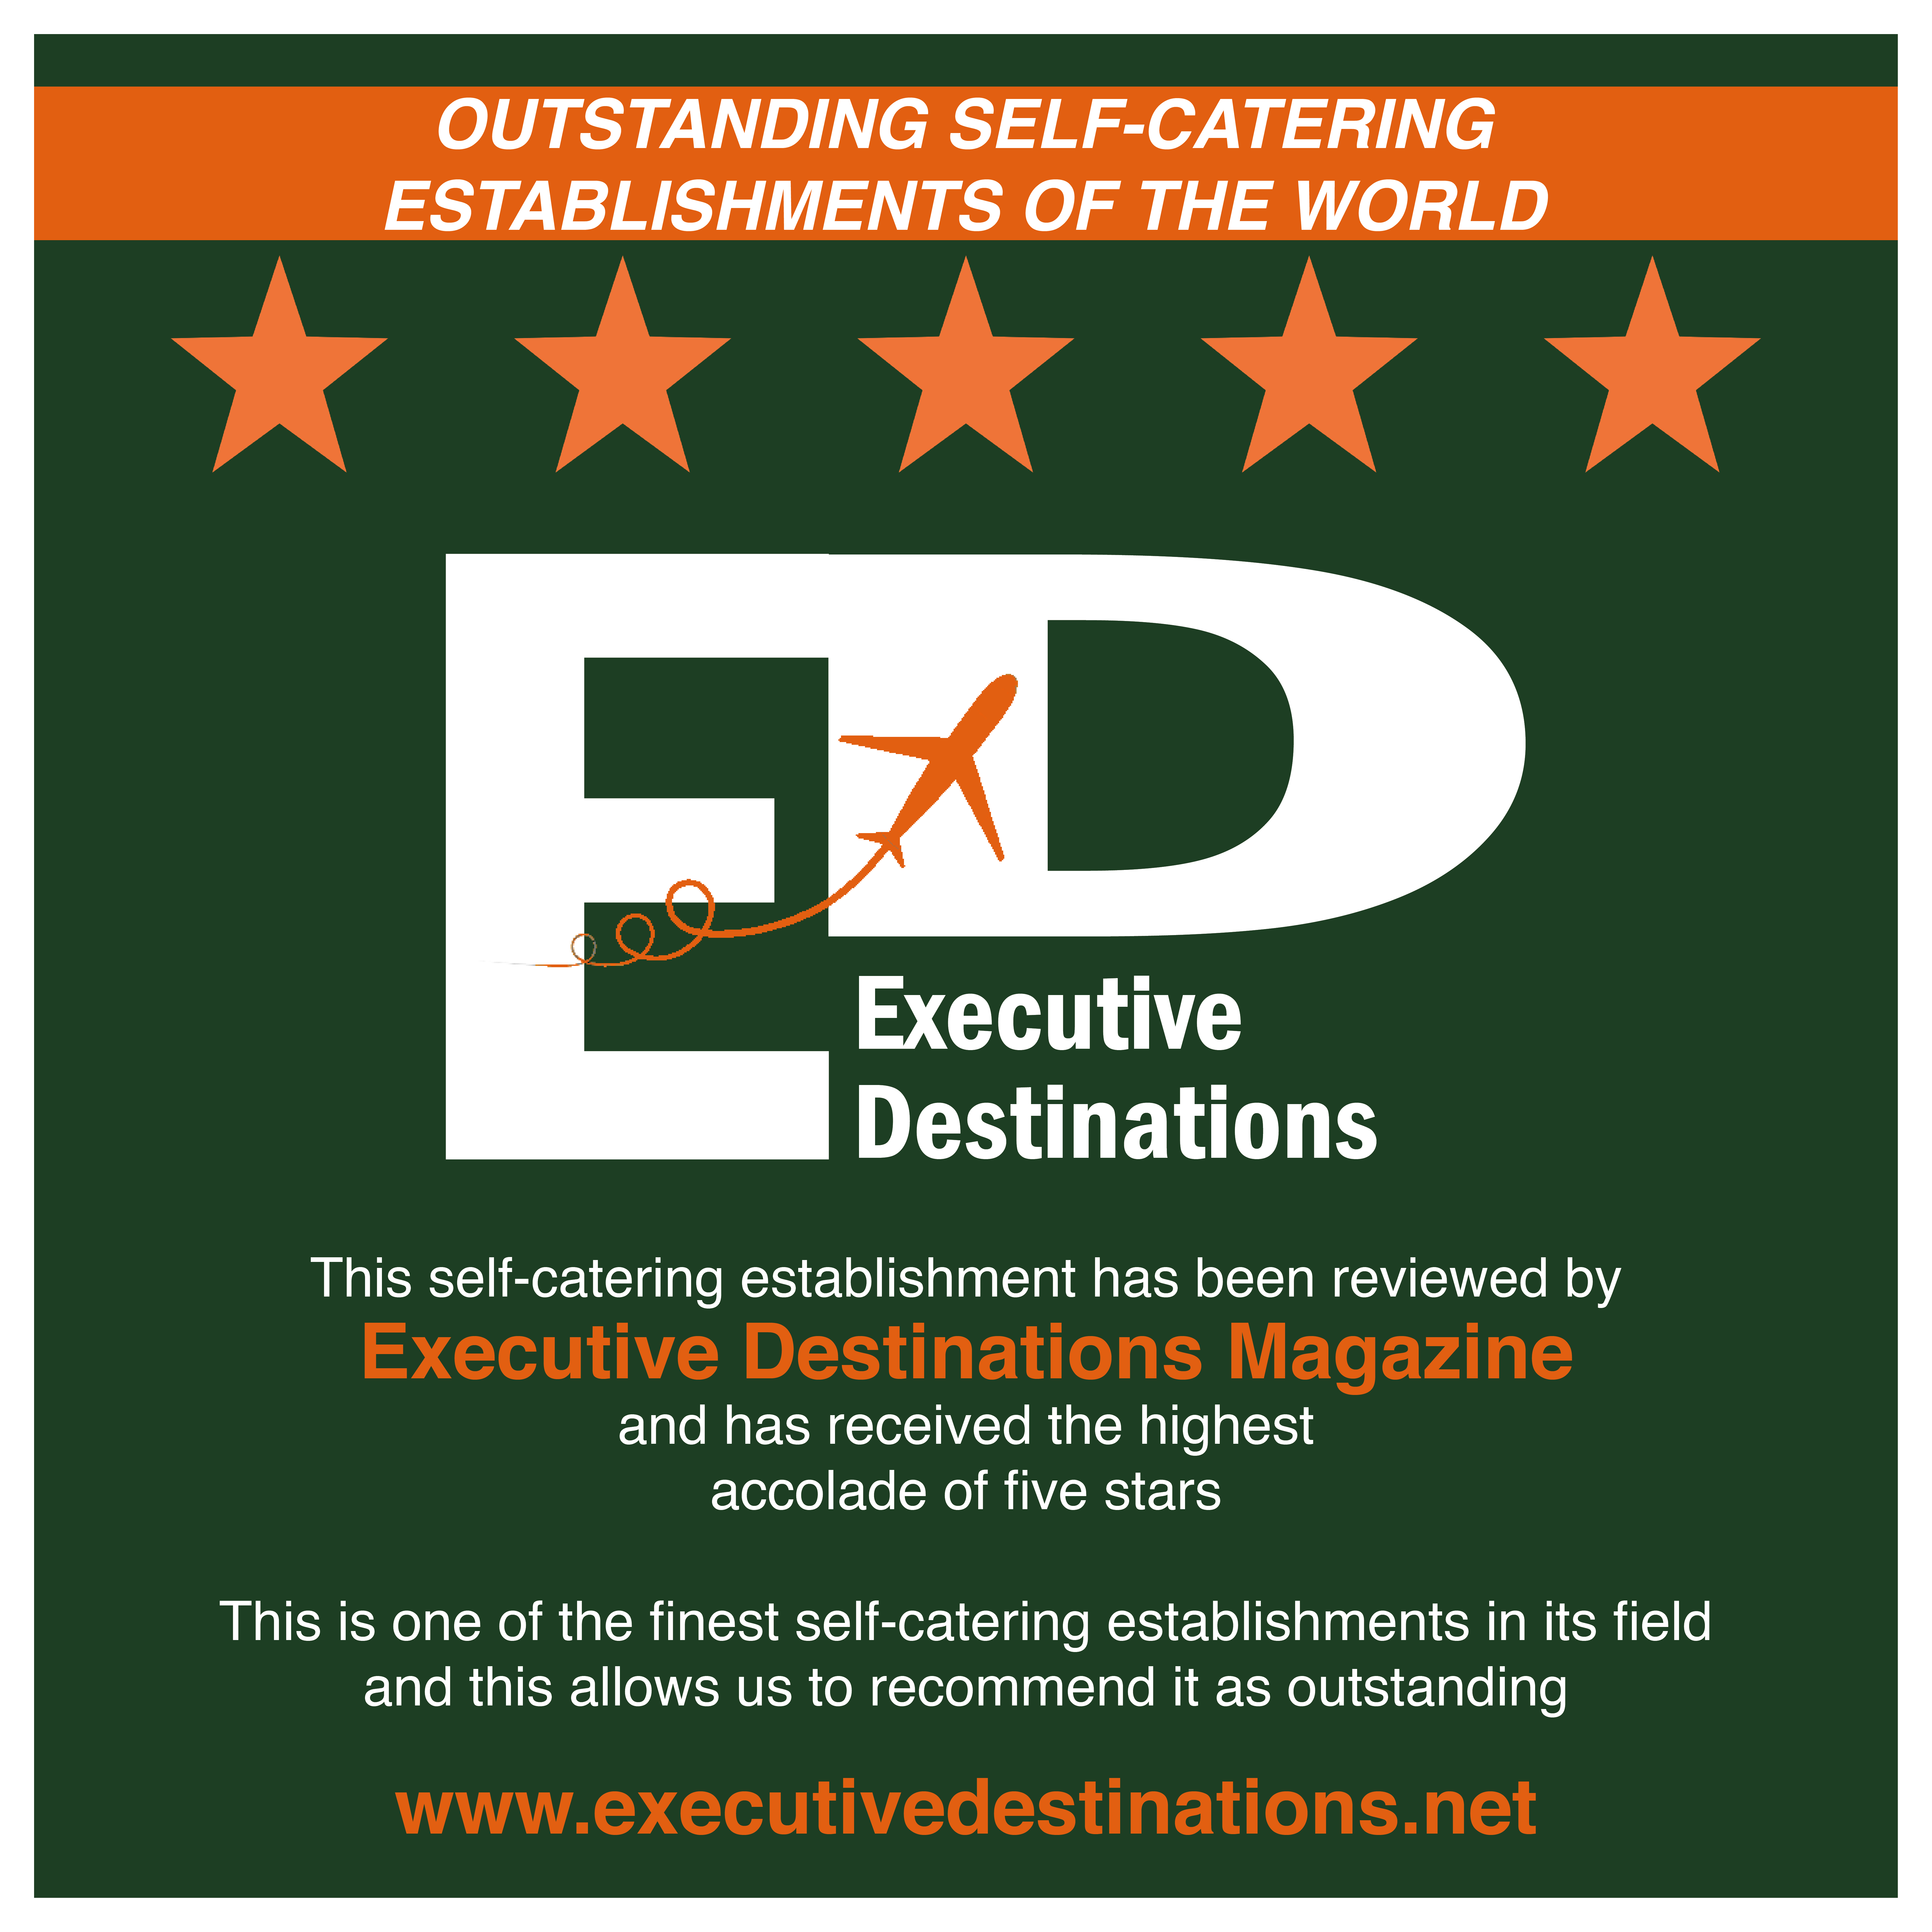 OUTSTANDING SELF-CATERING ESTABLISHMENTS OF THE WORLD